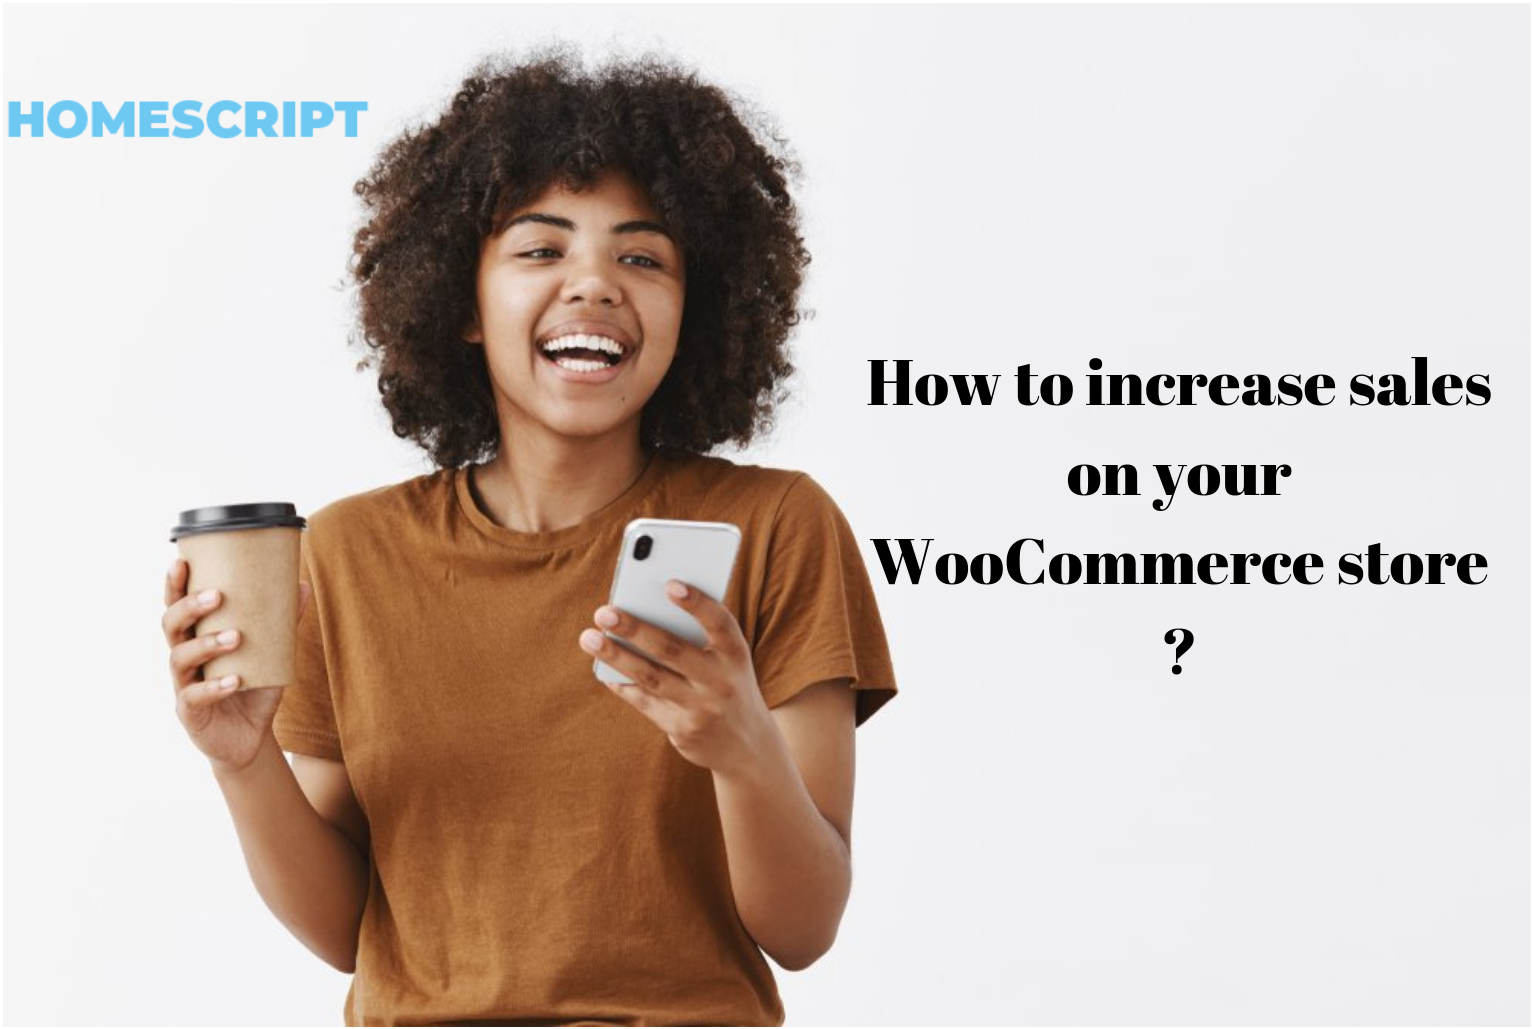 how to increase sales on your woocommerce store?